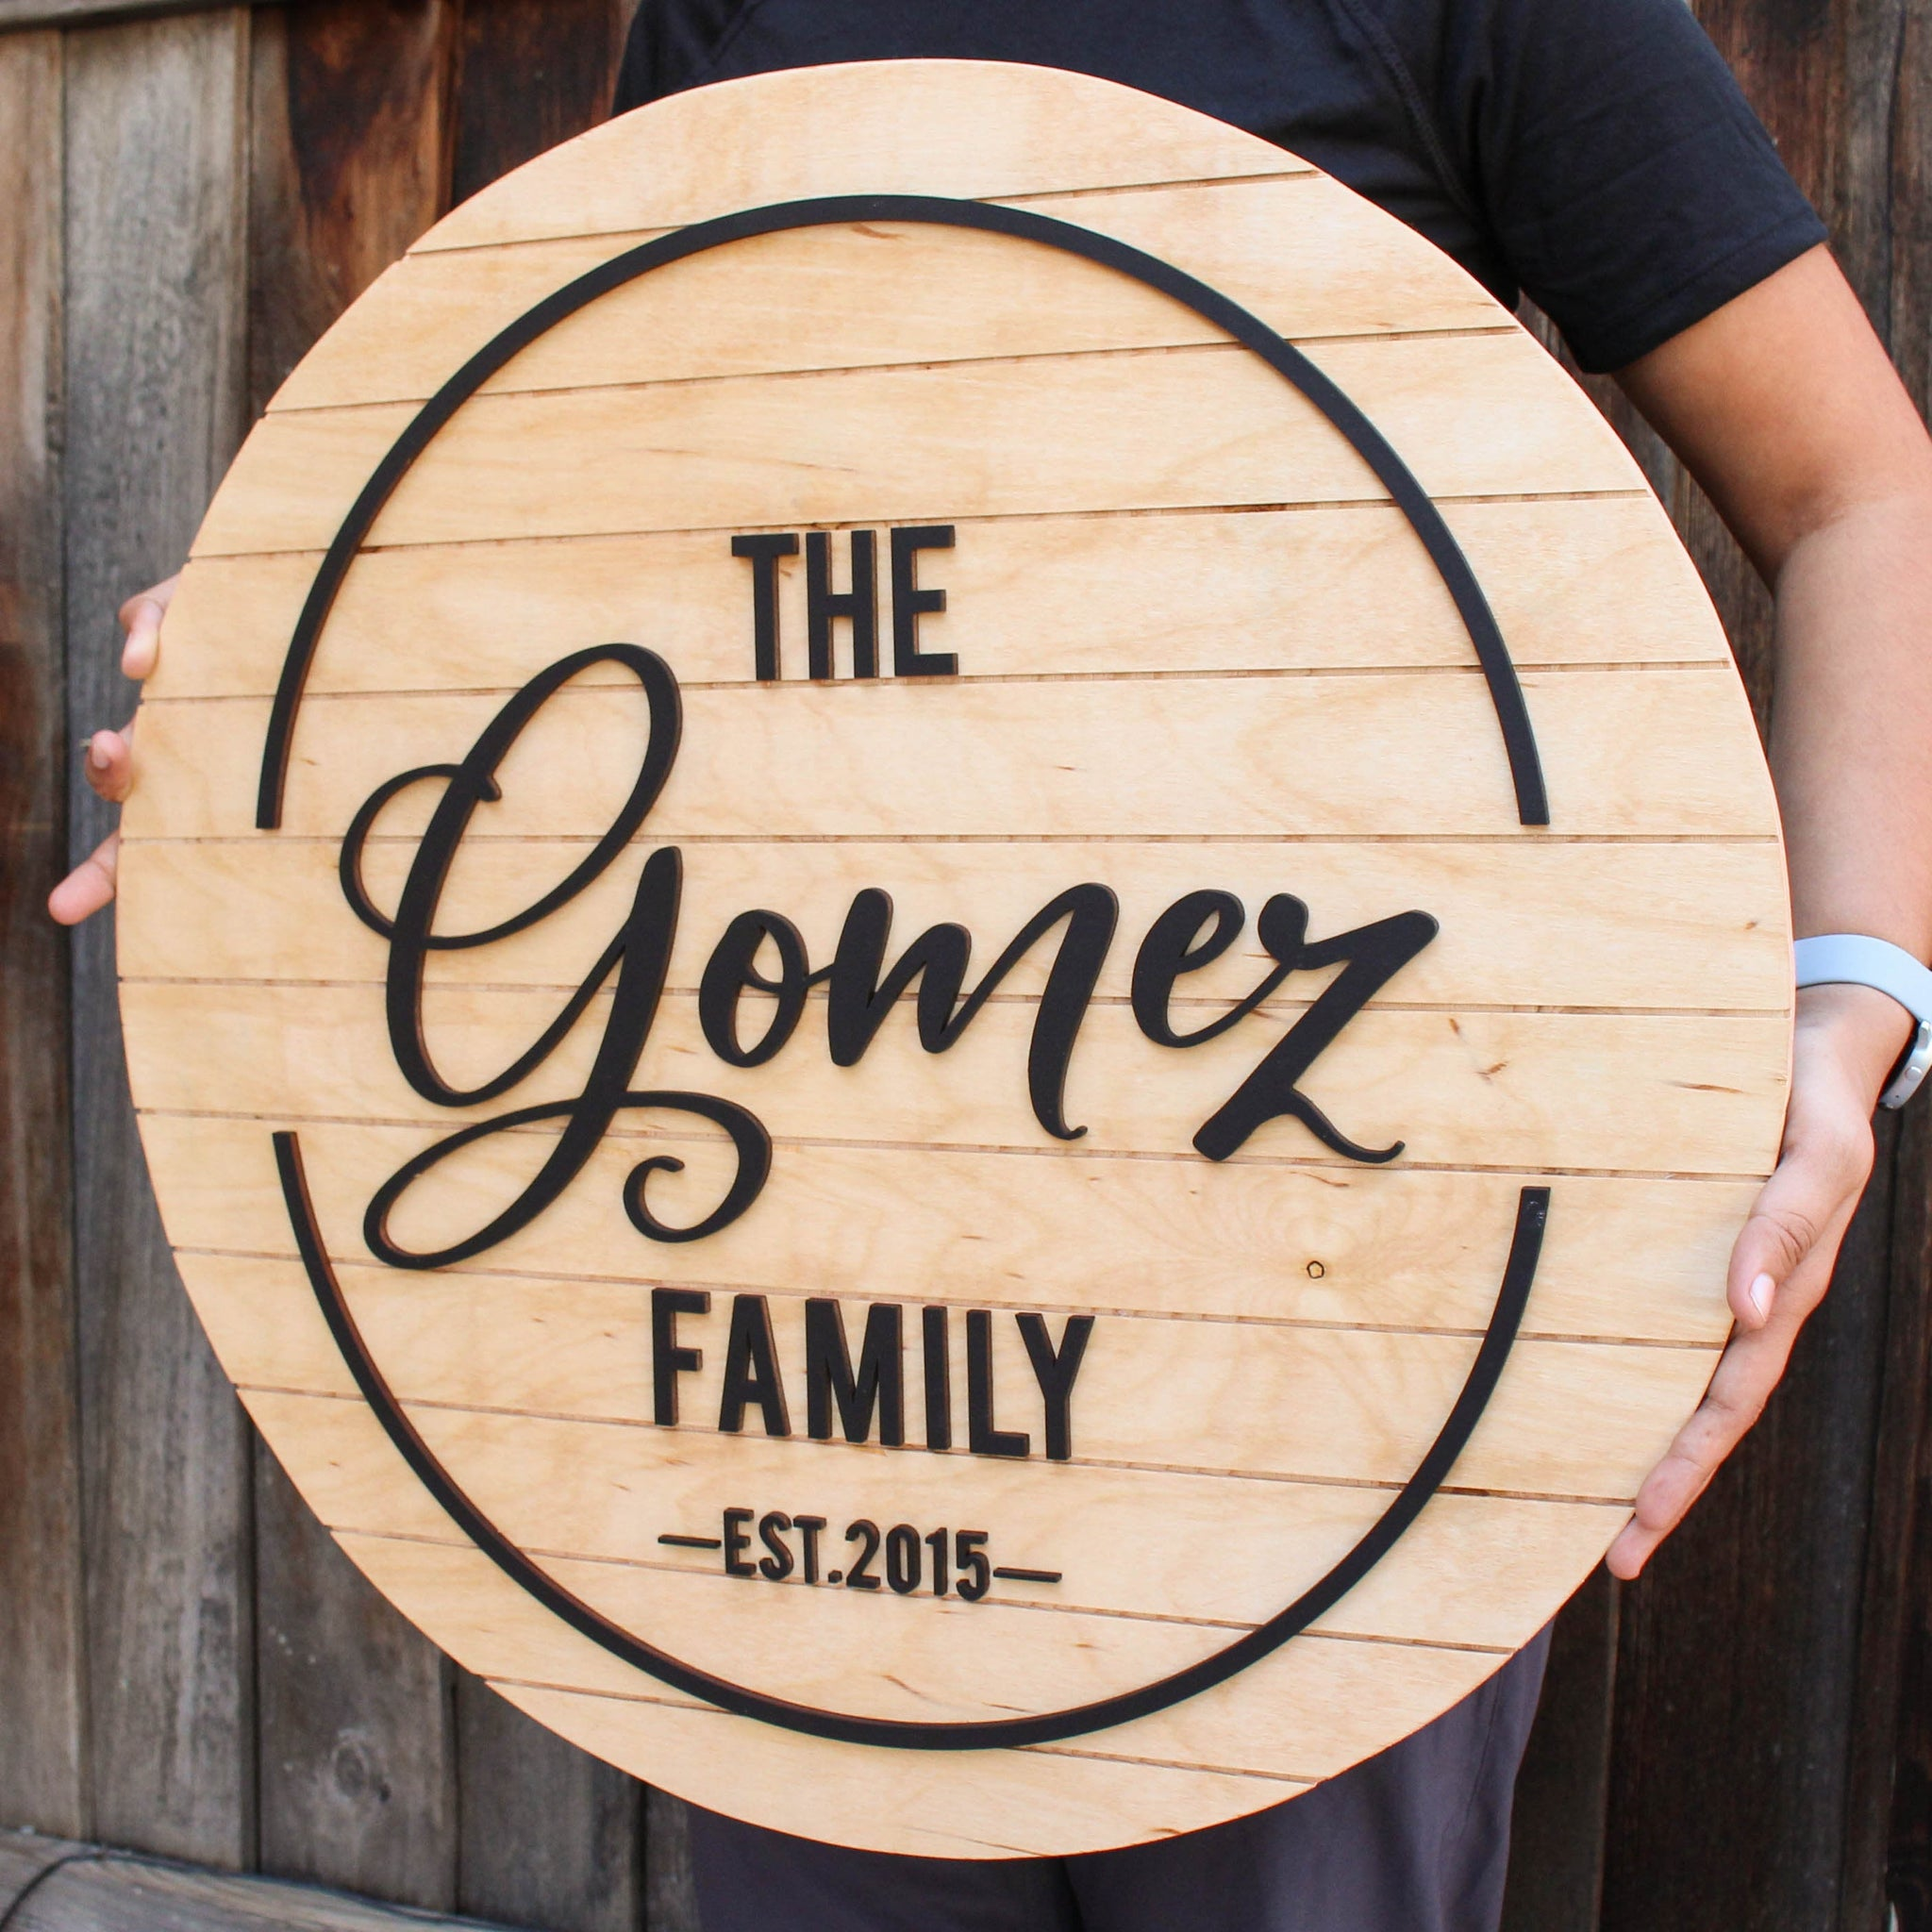 Last Name Sign, Family Name Sign, Wooden Name Sign, Family Name Sign Wood,